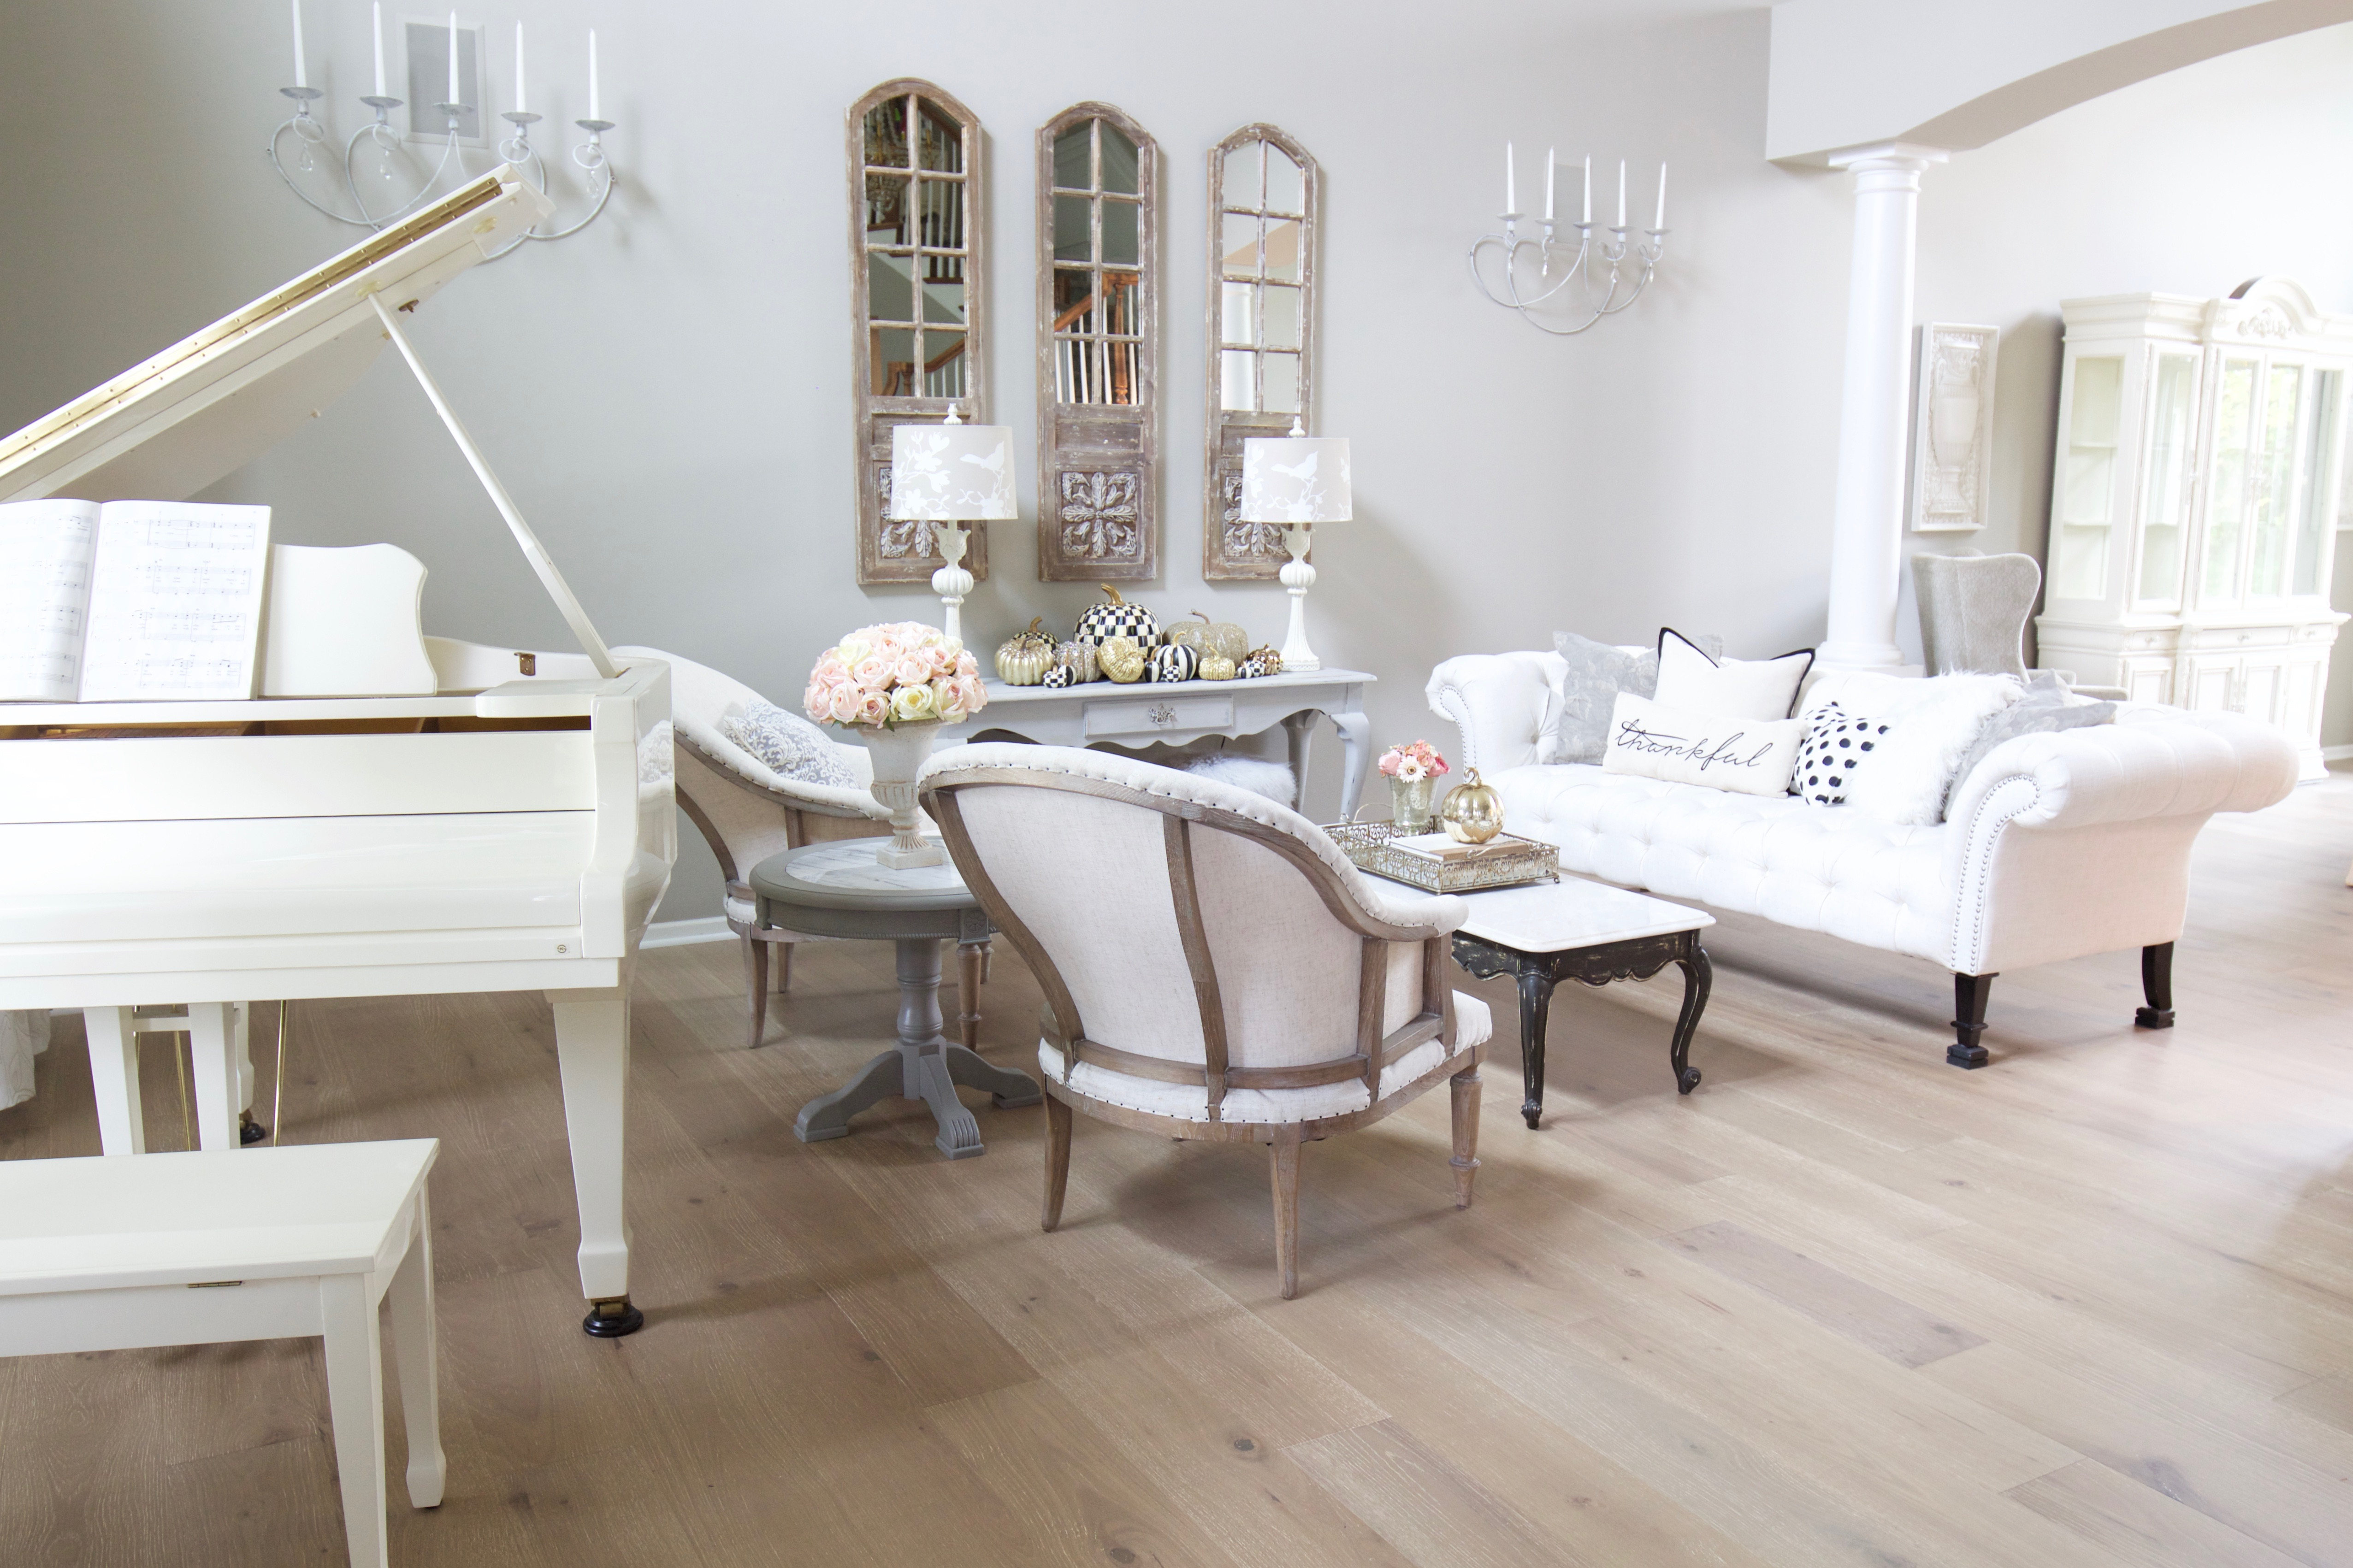 Living Room In French French Glam Living Room Reveal With New Wood Floors Styled With Lace